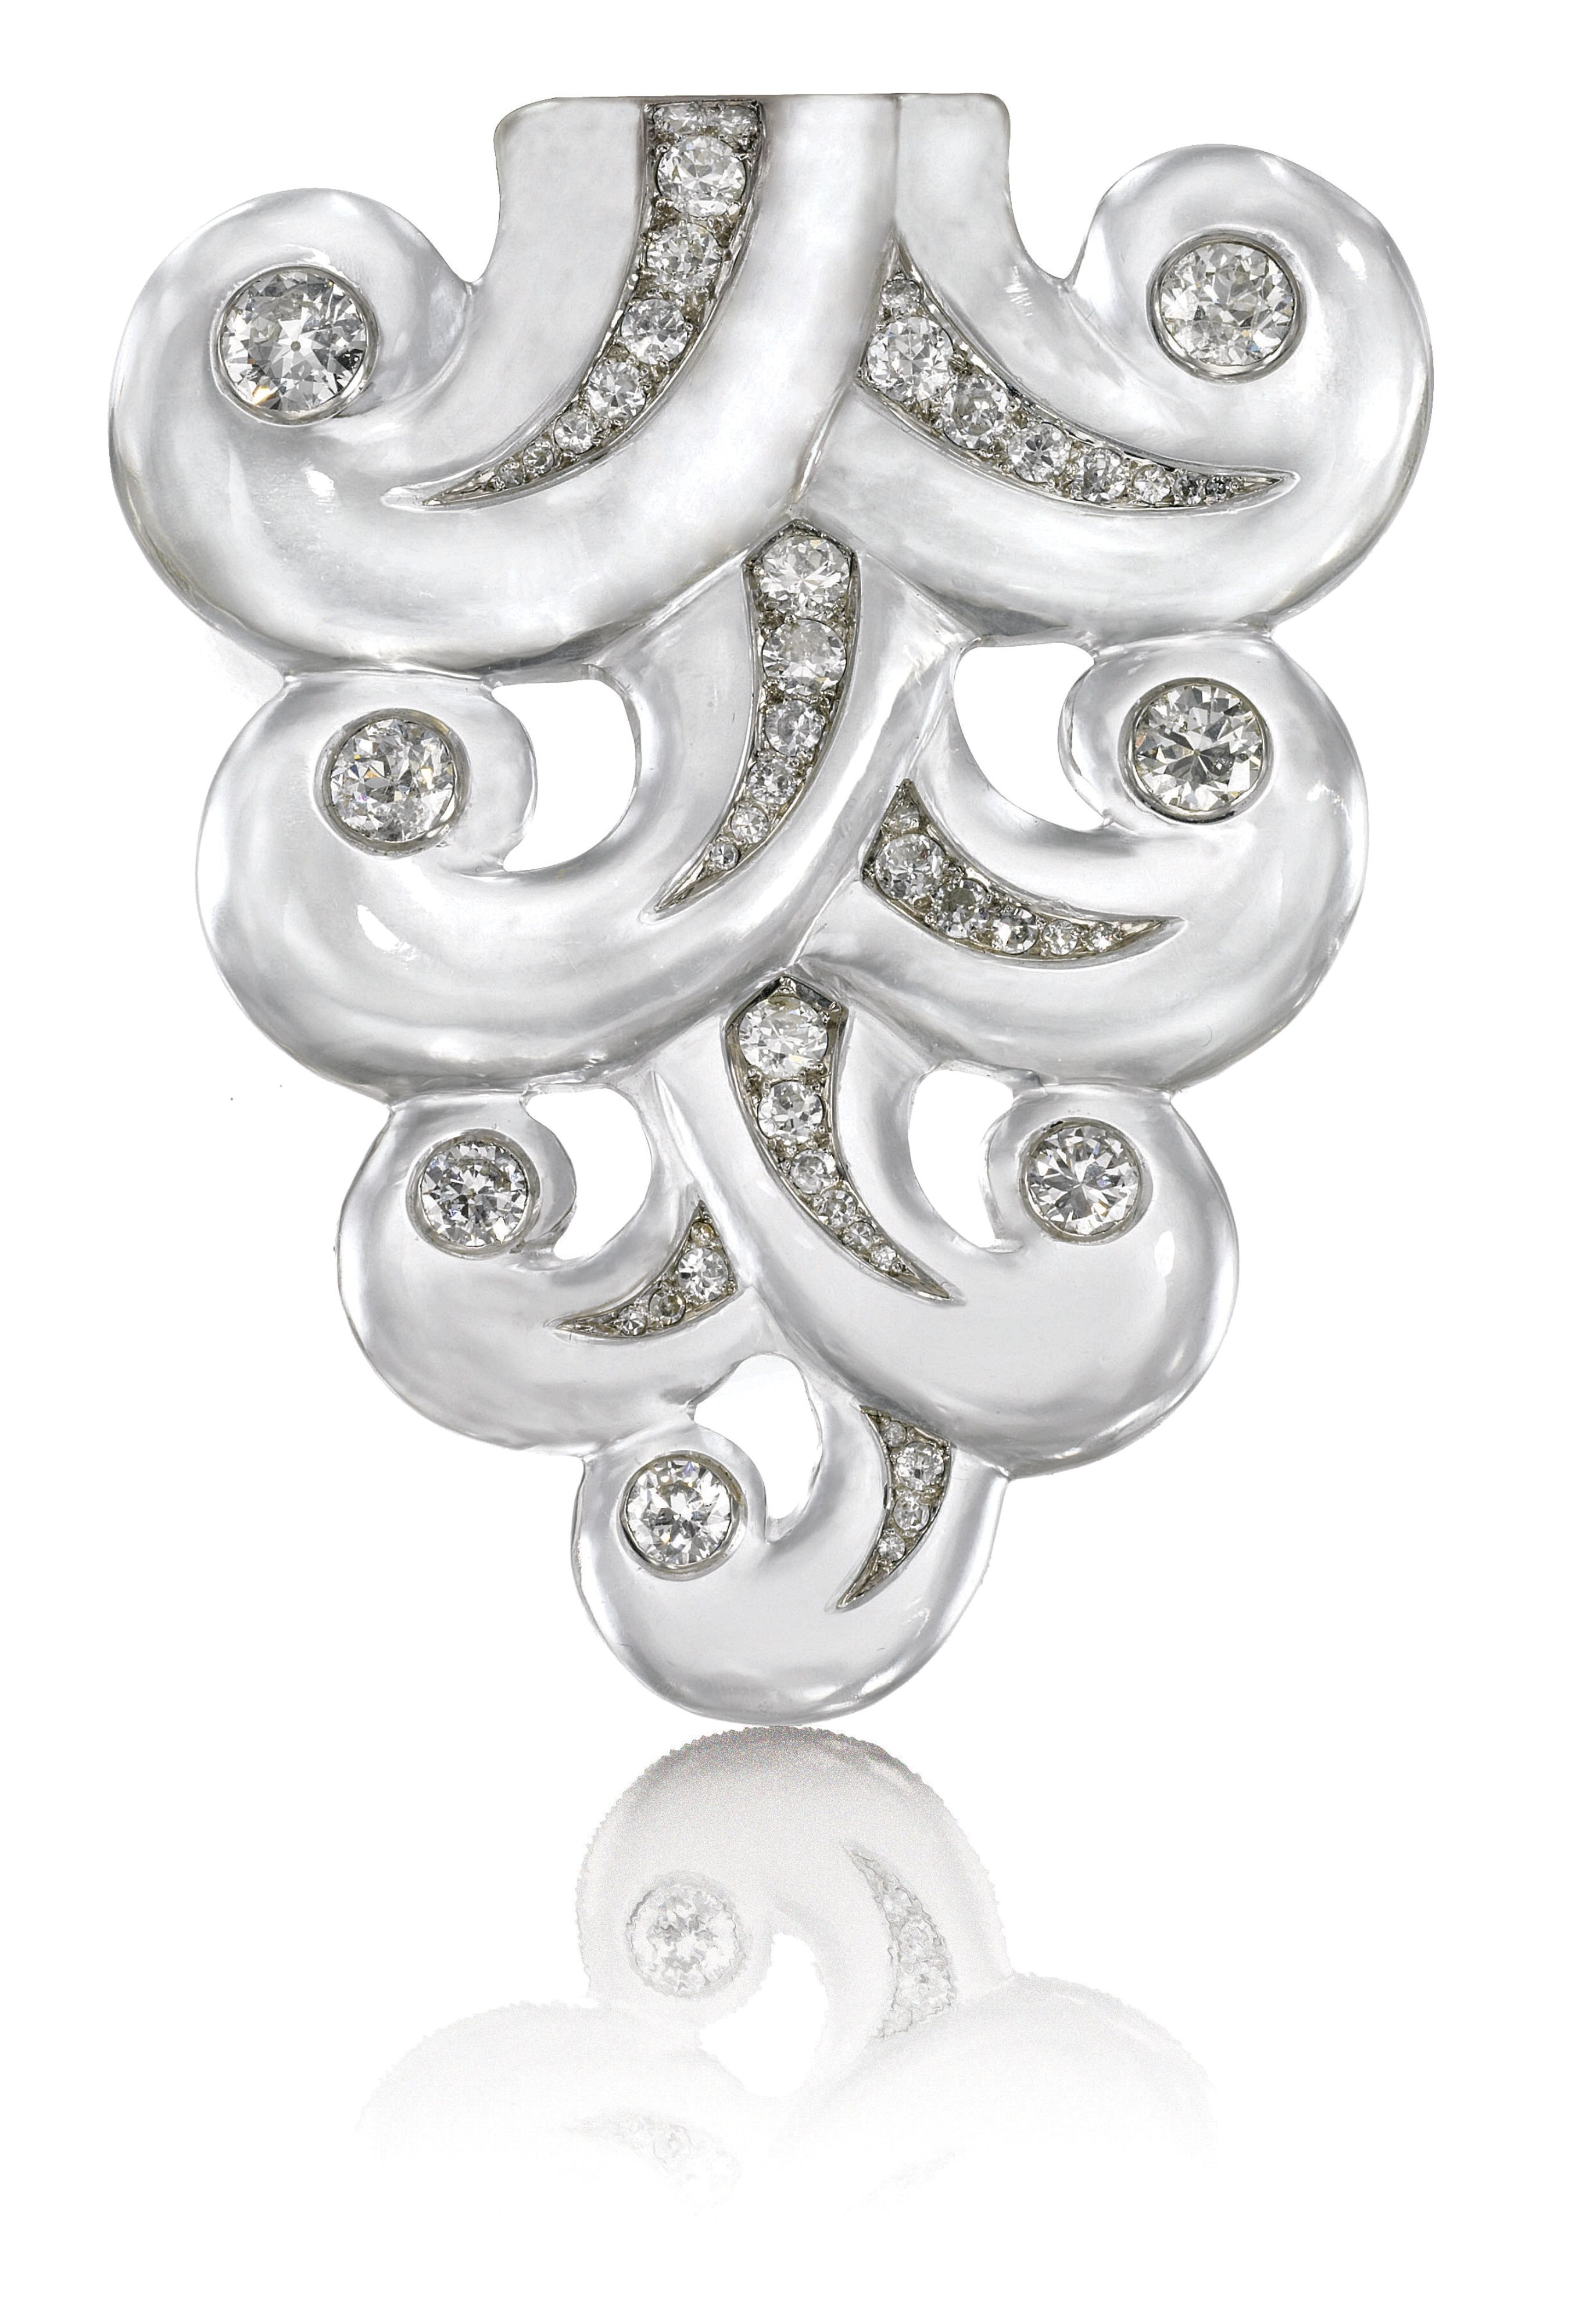 Rock Crystal and Diamond Brooch, Suzanne Belperron, 1932 - 1955. JEWELS FROM THE PERSONAL COLLECTION OF SUZANNE BELPERRON.